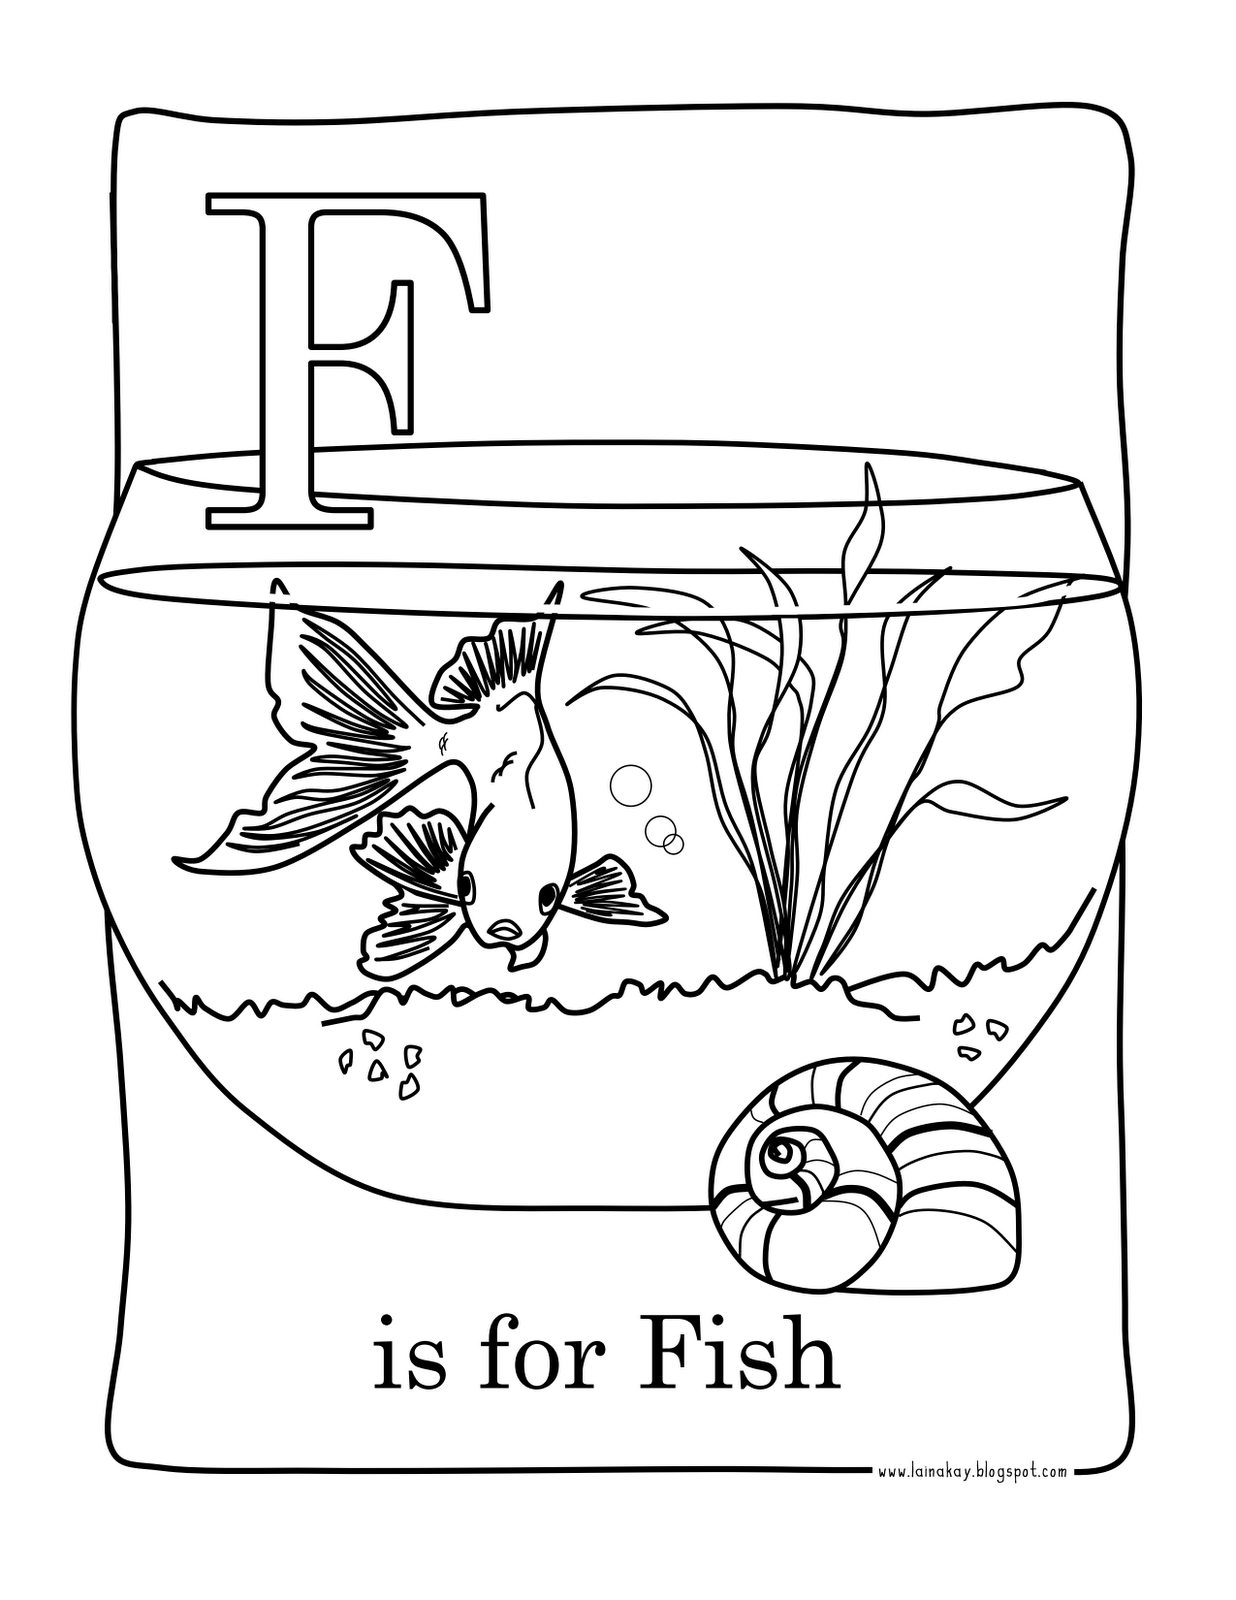 f for fish coloring pages - photo #26